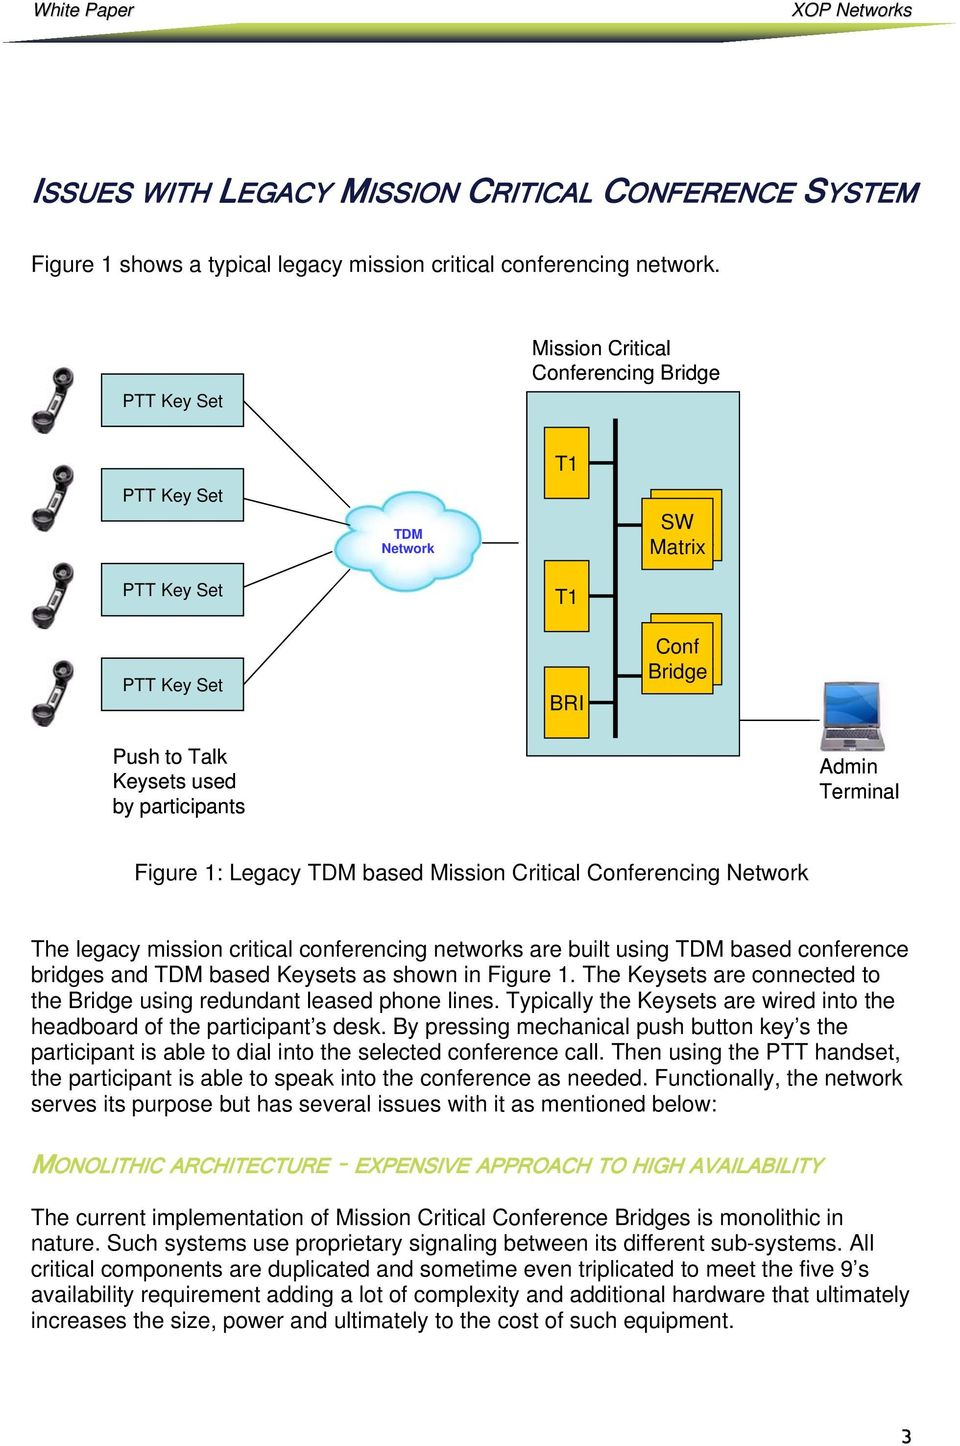 Terminal Figure 1: Legacy TDM based Mission Critical Conferencing Network The legacy mission critical conferencing networks are built using TDM based conference bridges and TDM based Keysets as shown